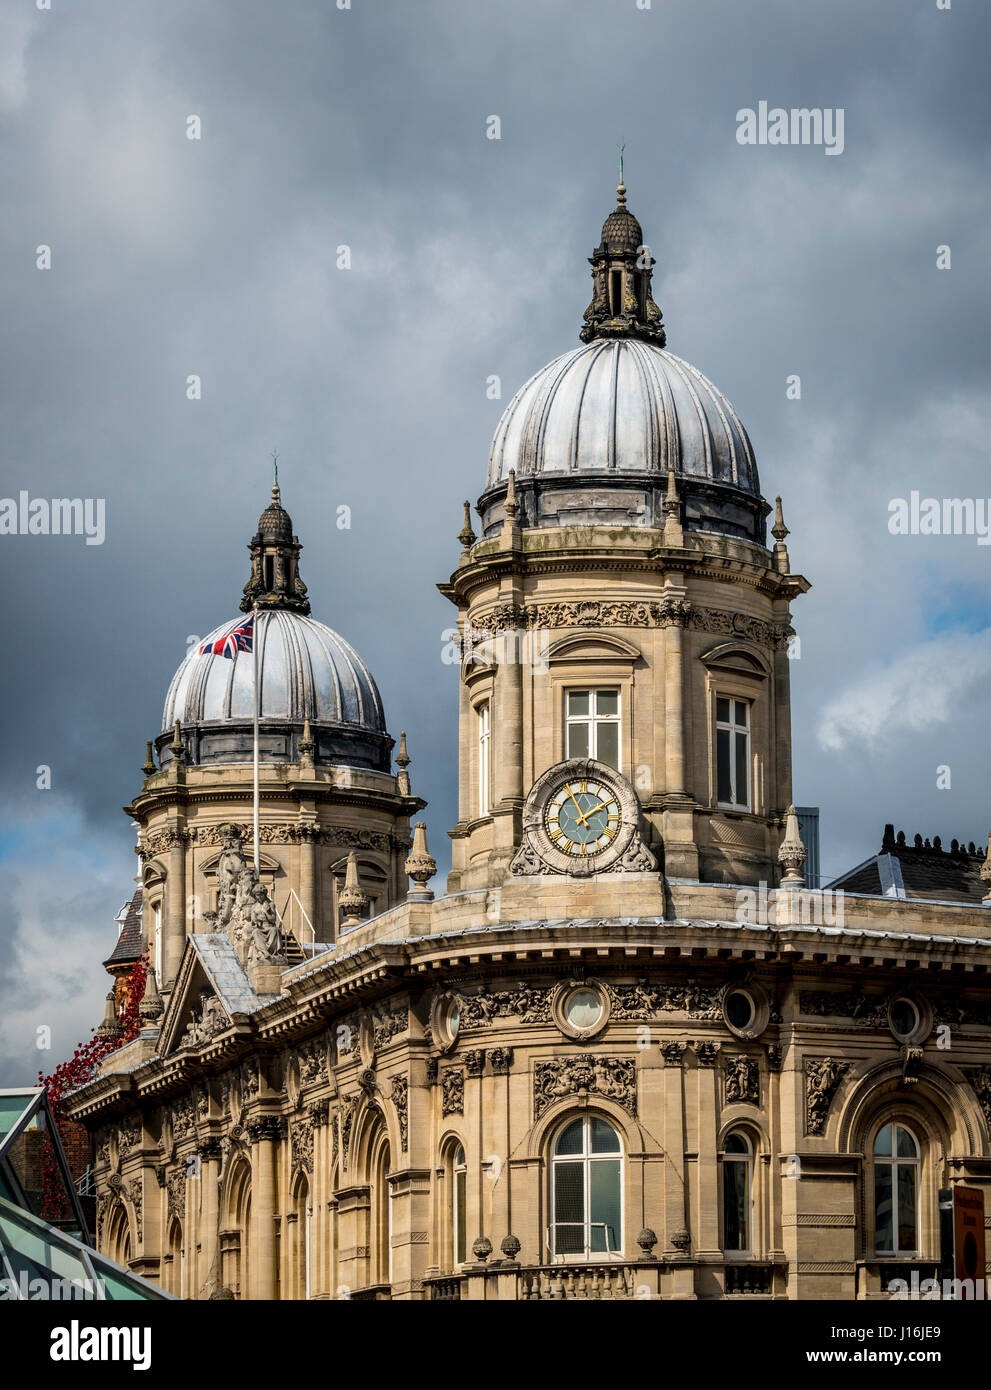 Roof of Maritime Museum with clocktower, Hull, UK. - Stock Image